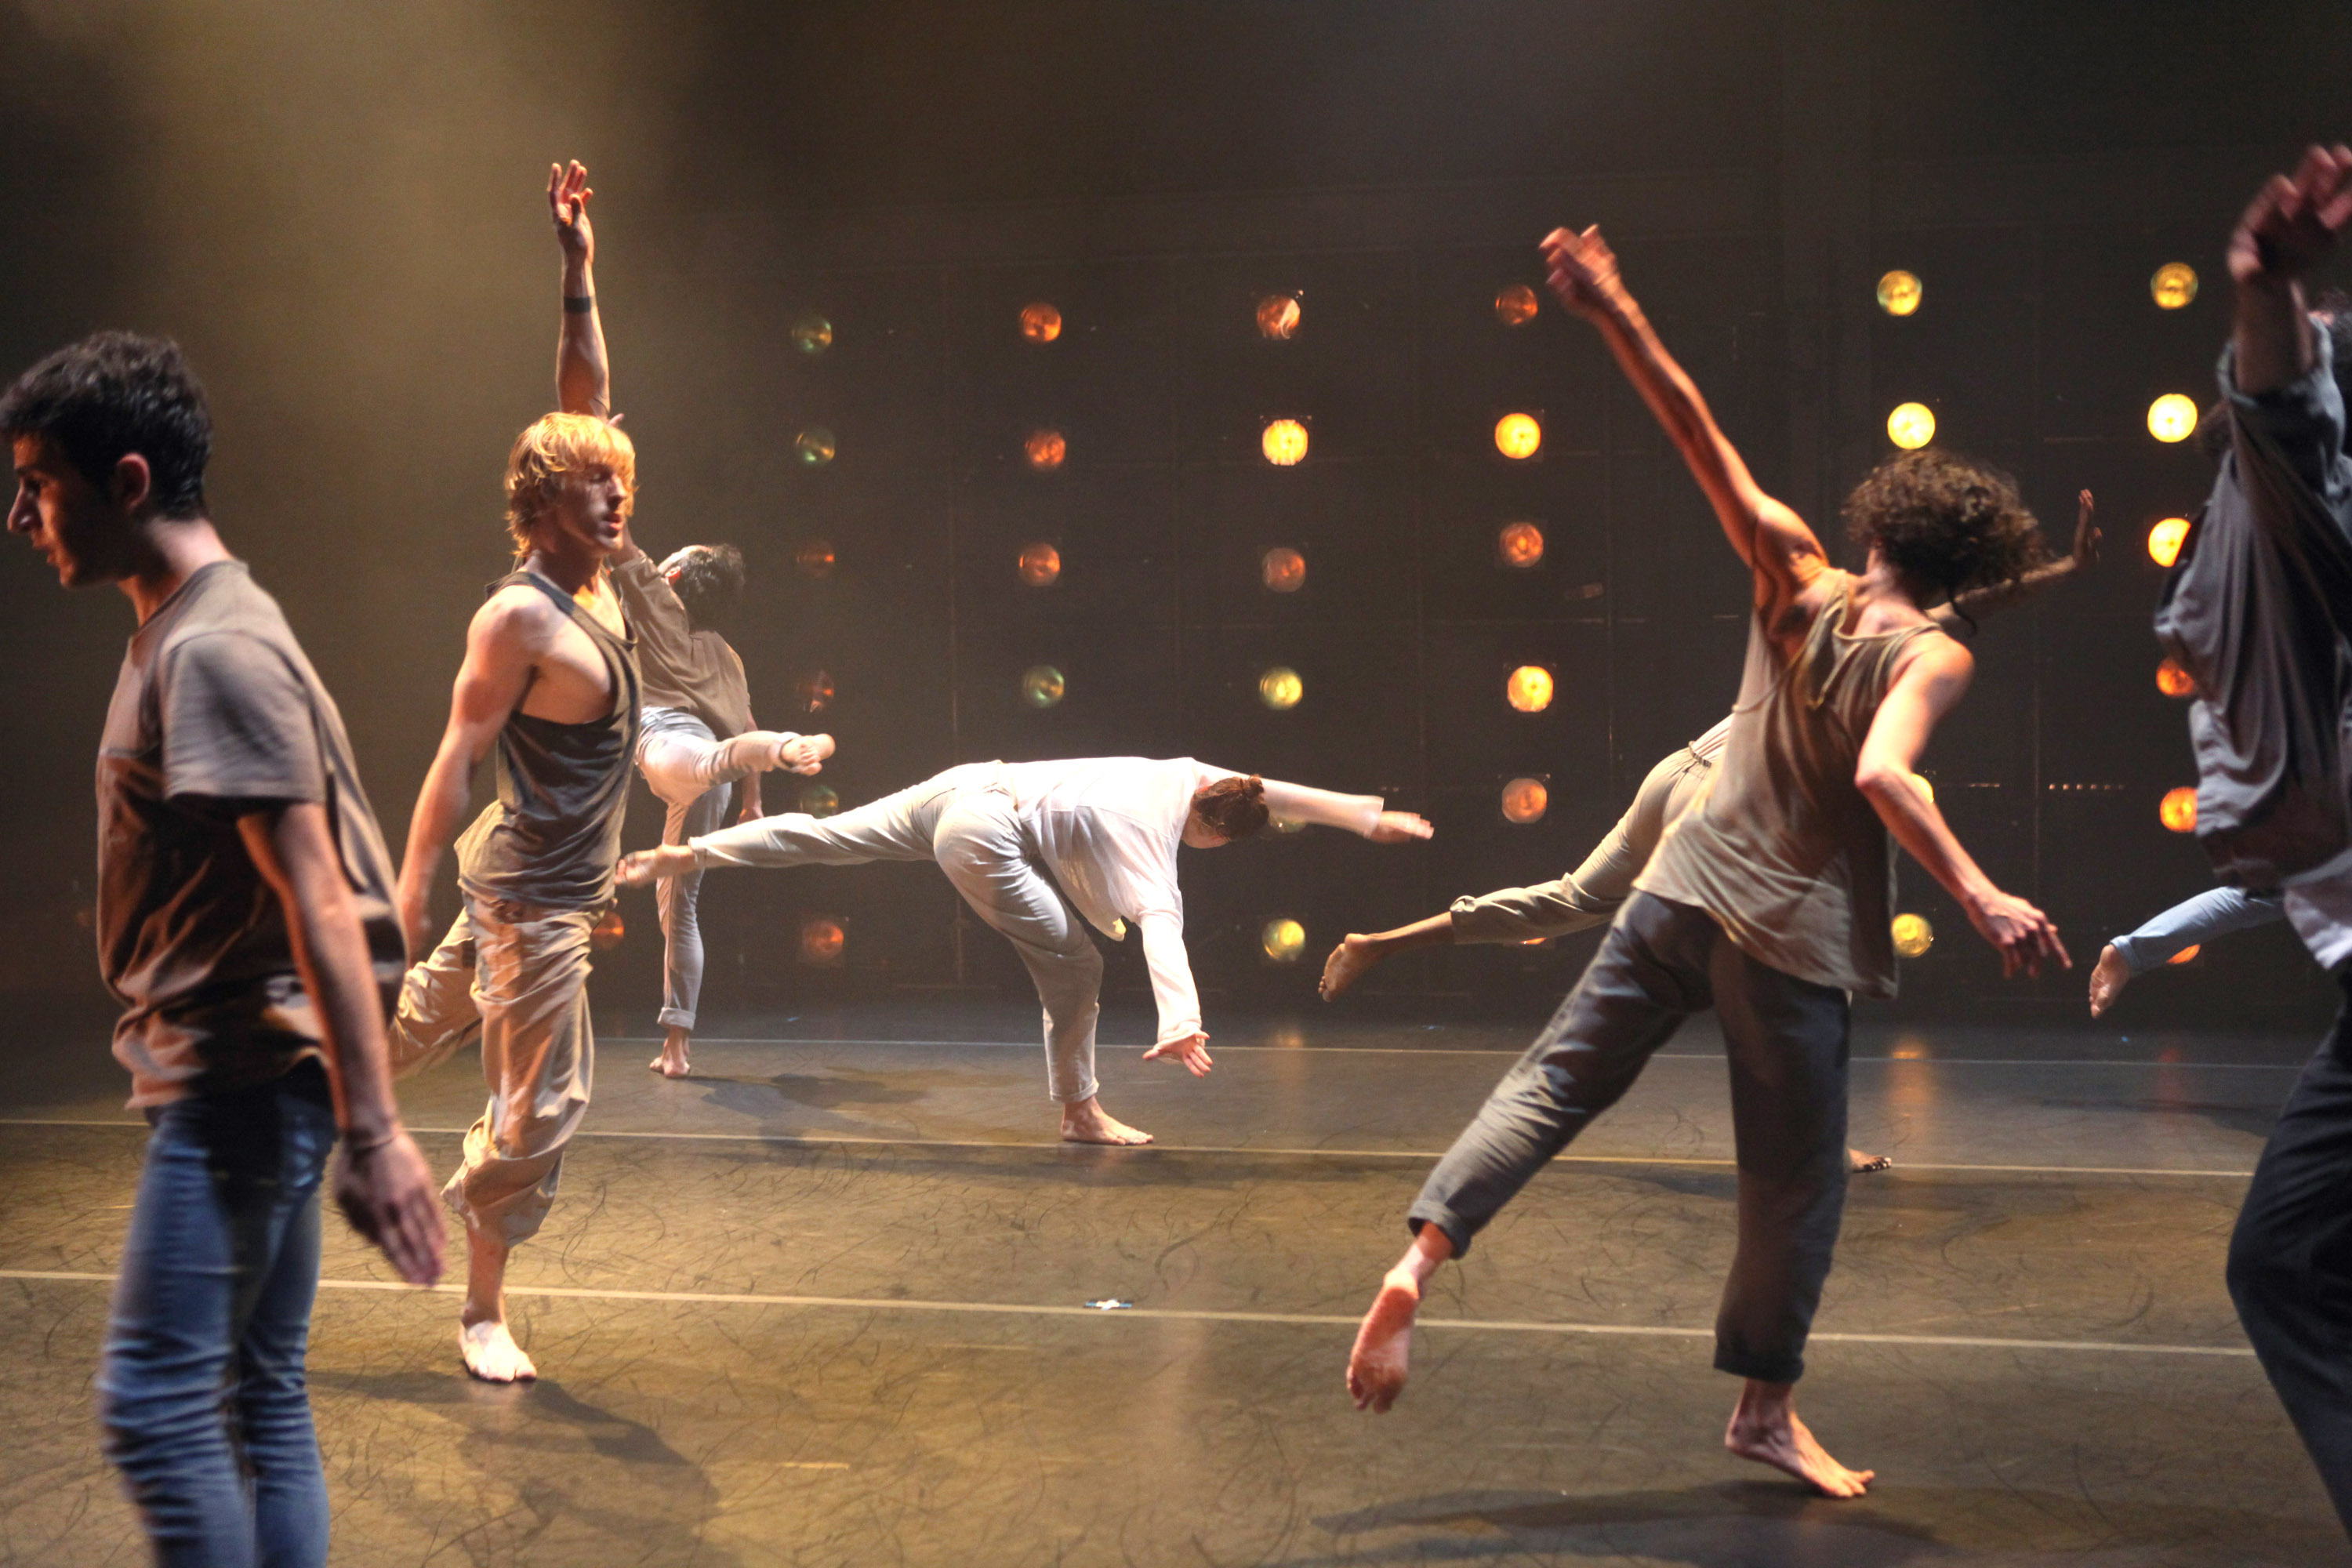 Dancer jumping and dancing in different directions on stage